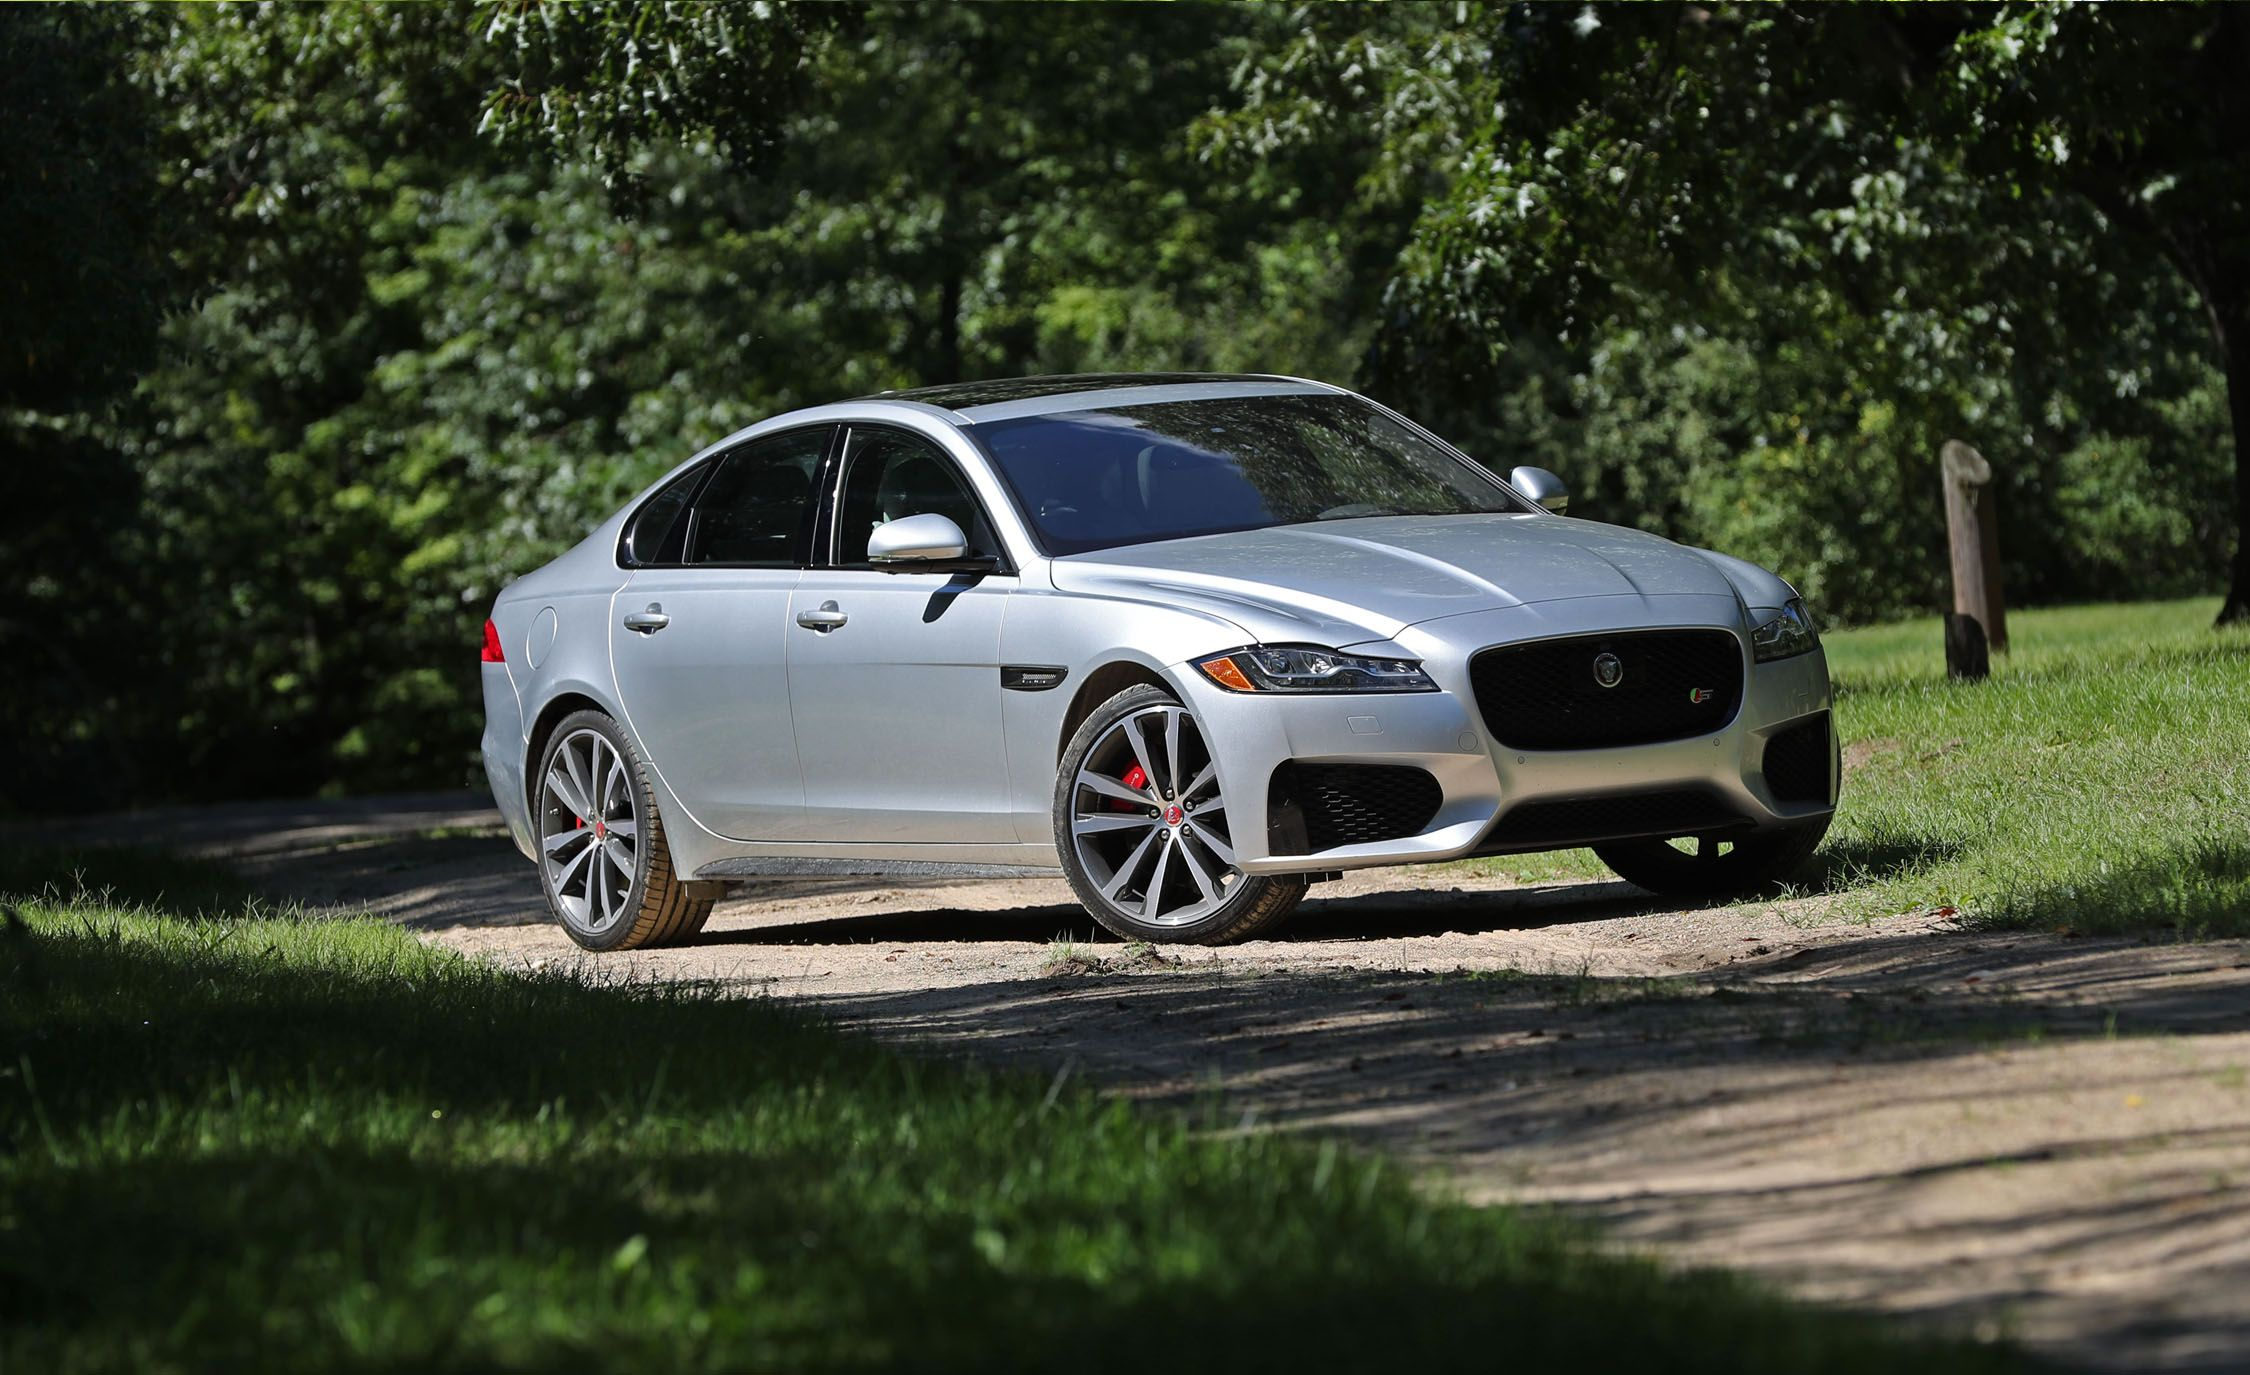 2018 Jaguar Xf S Sportbrake First Drive Review Car And Driver 1950s Cars